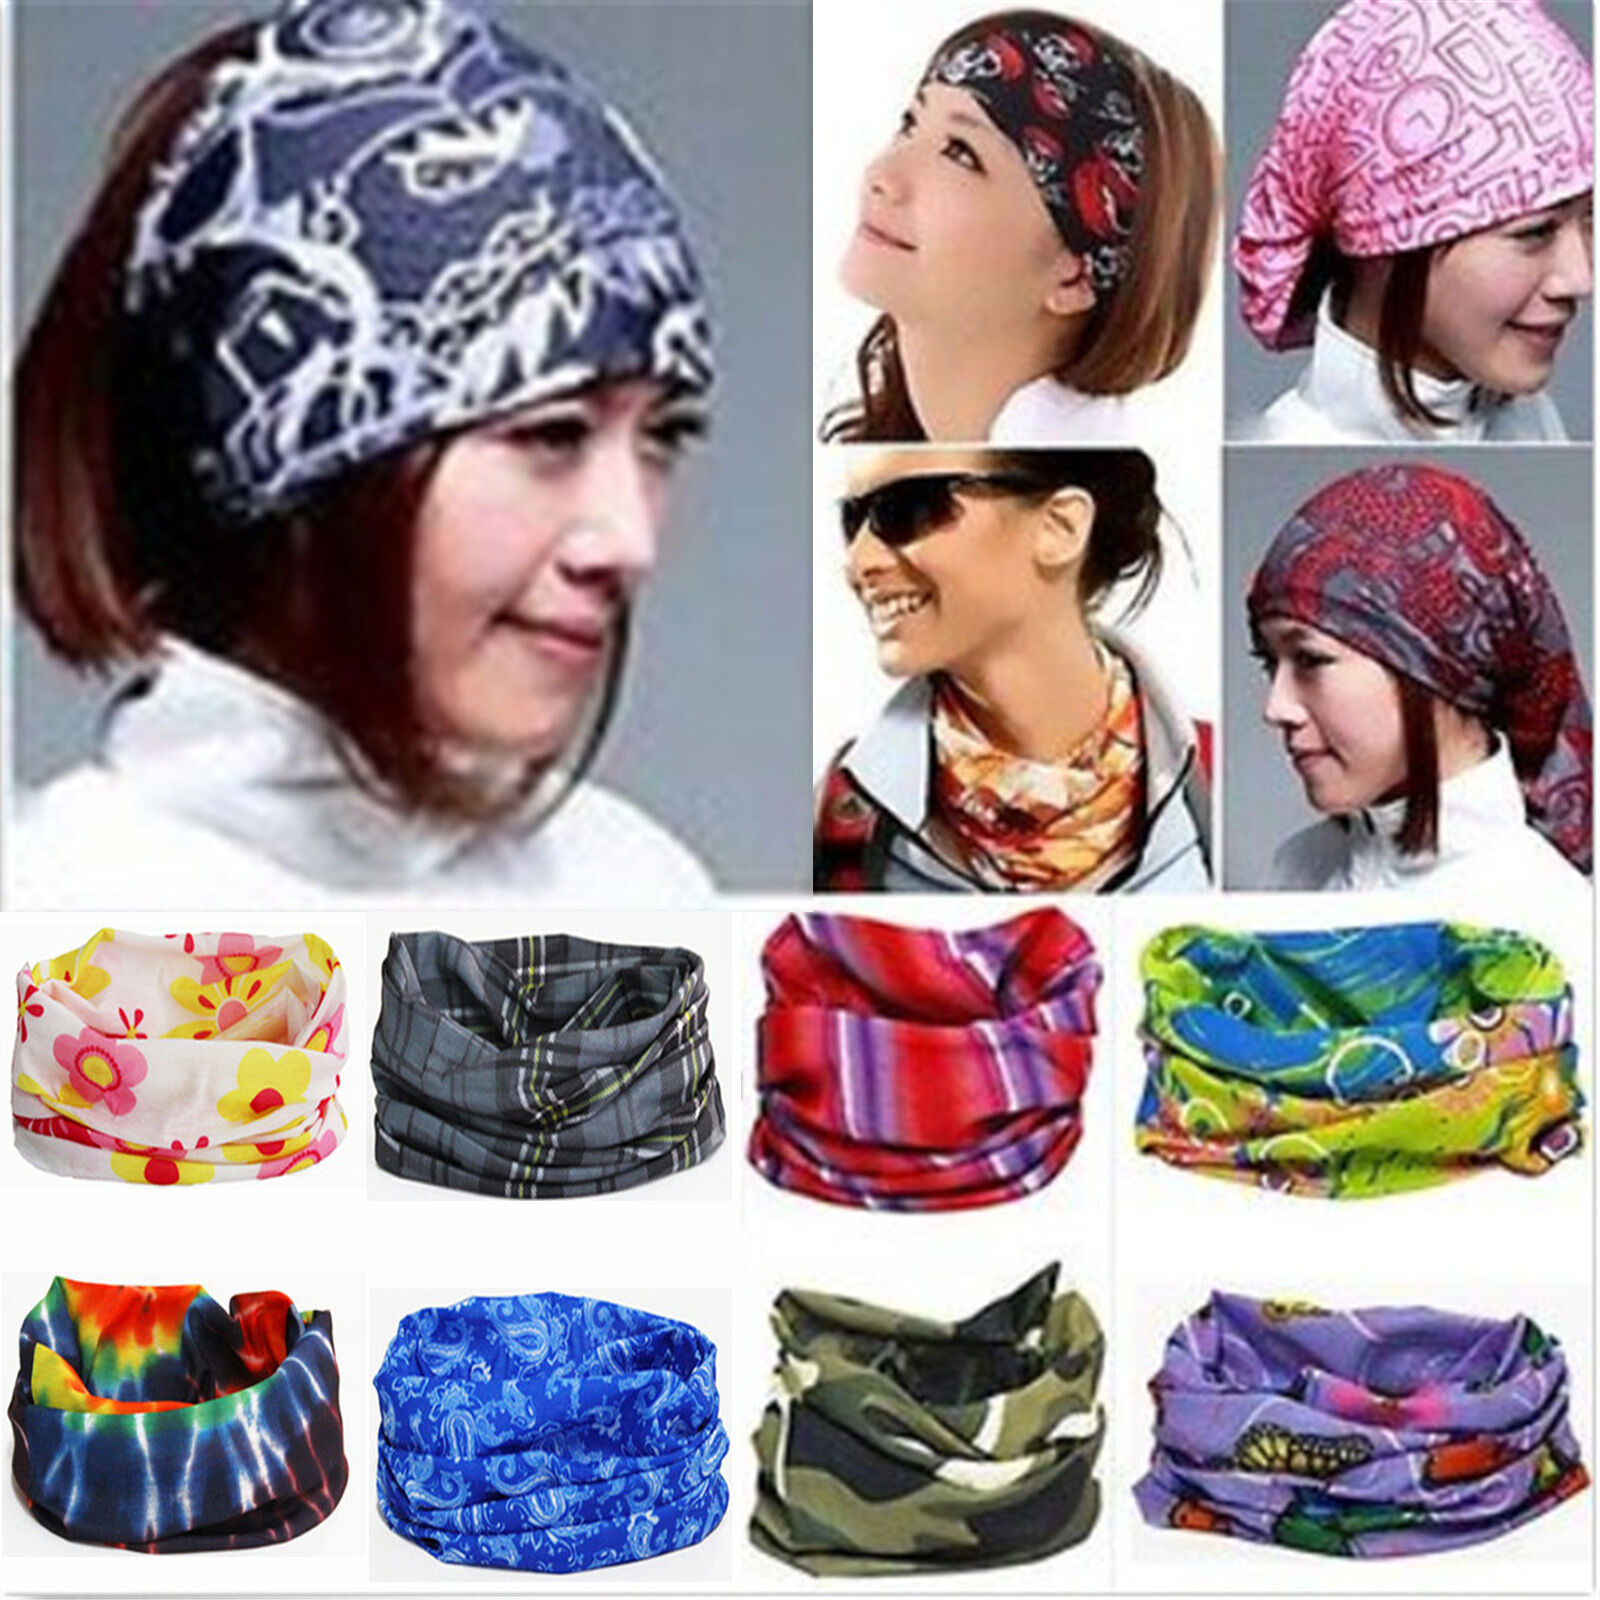 Details about 3in1 Neck Head Scarf Kerchief Headband Wrap Bandana Running  Hiking Face Mask 297bddfc1fd